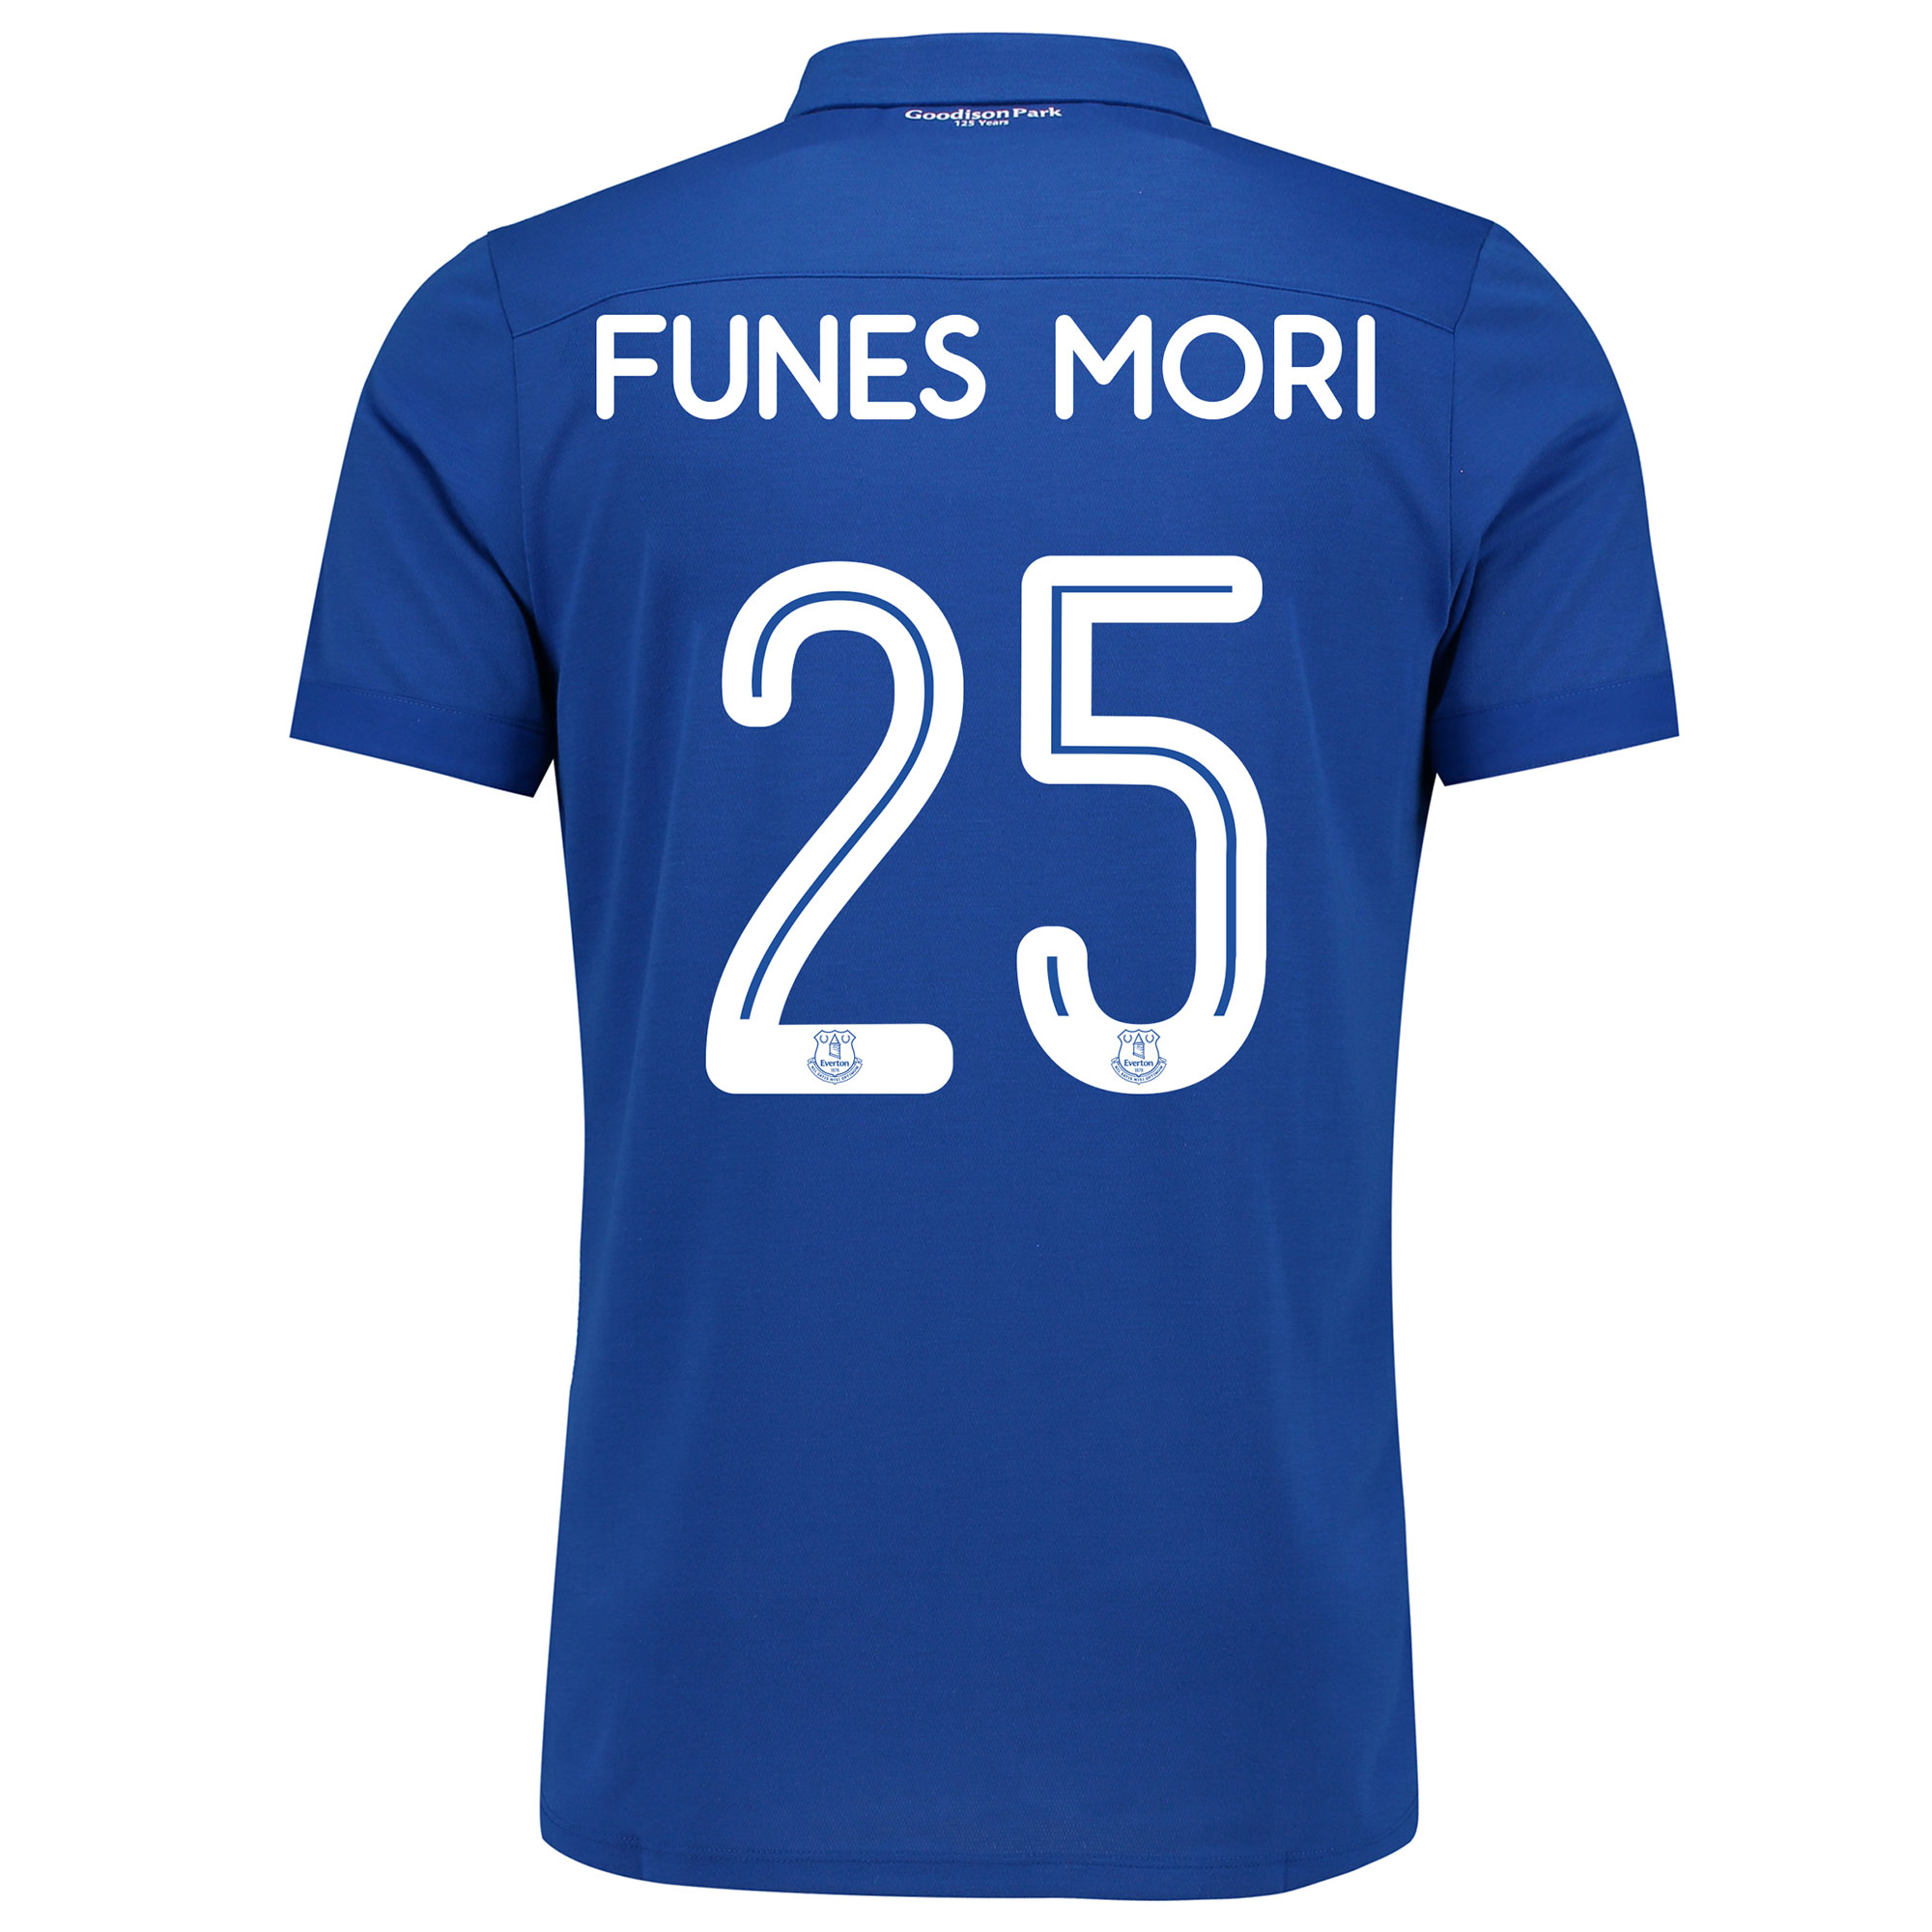 Image of Everton Commemorative Shirt with Funes Mori 25 printing